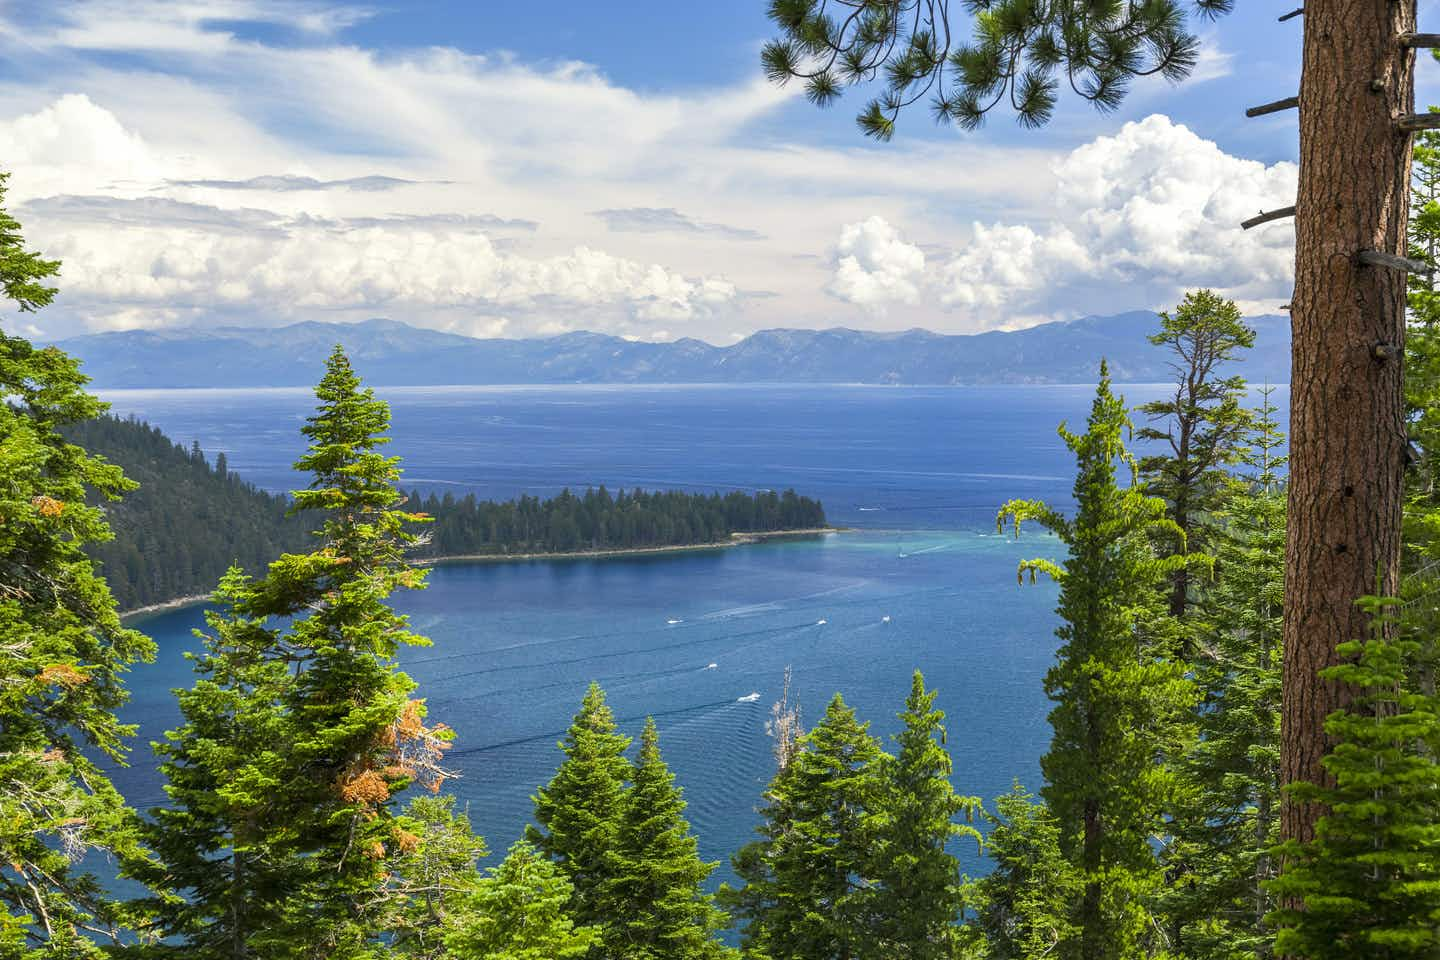 Start at Lake Tahoe for a drive along California's Hwy 395 that will take your breath away